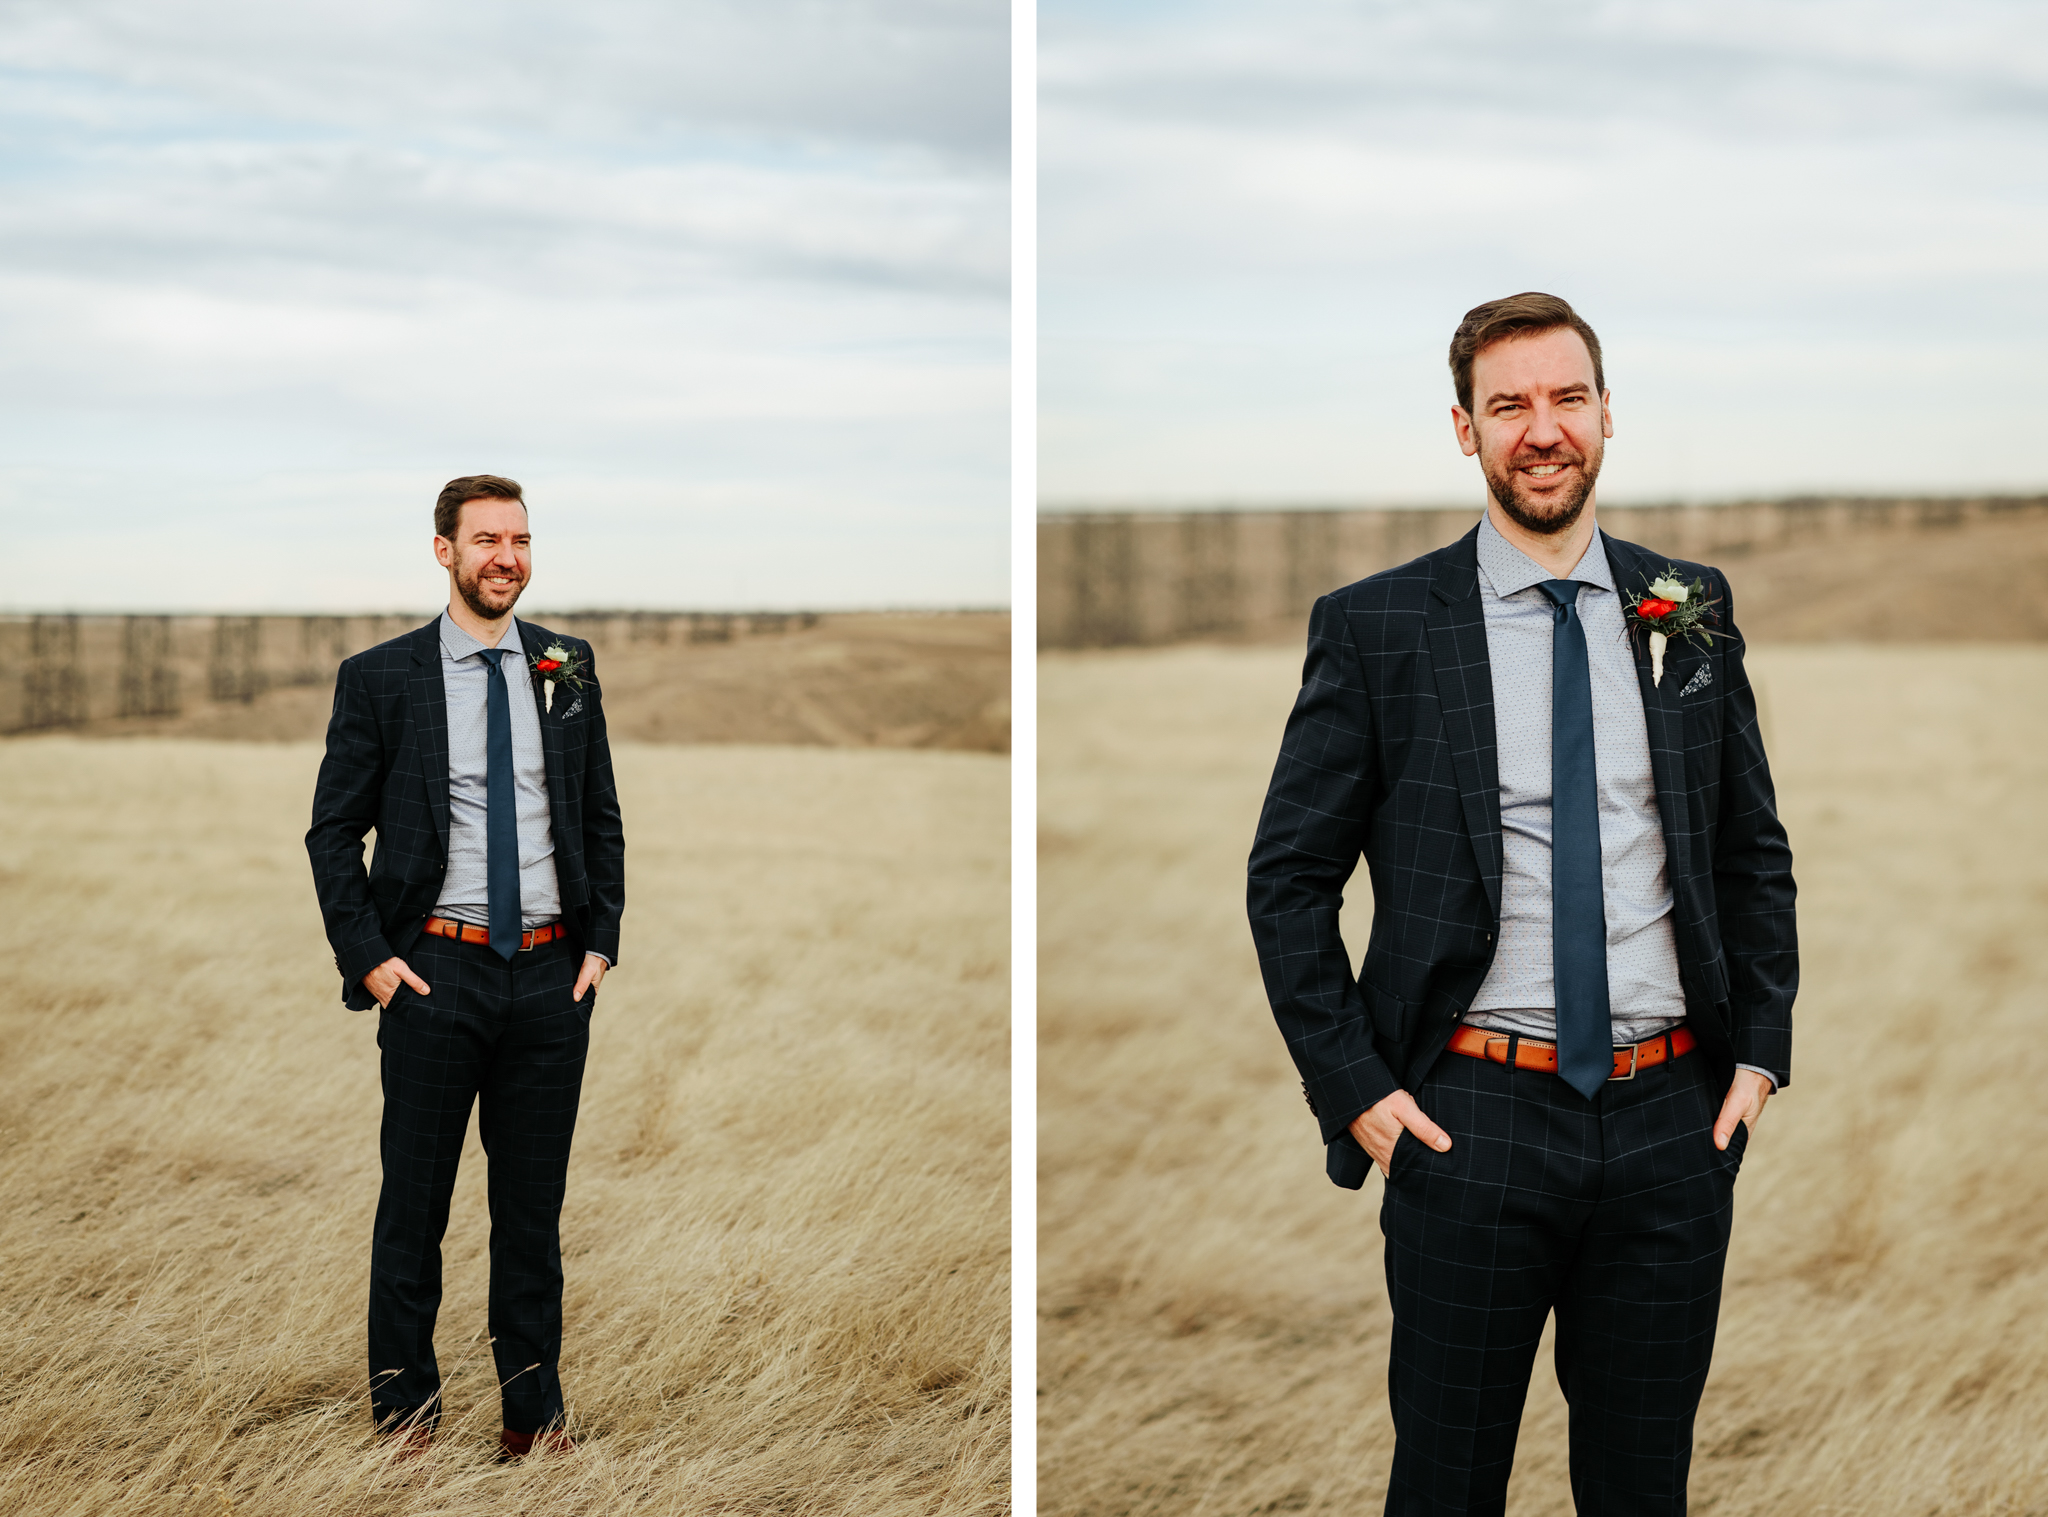 lethbridge-wedding-photographer-love-and-be-loved-photography-kris-amy-paradise-canyon-image-picture-photo-48.jpg